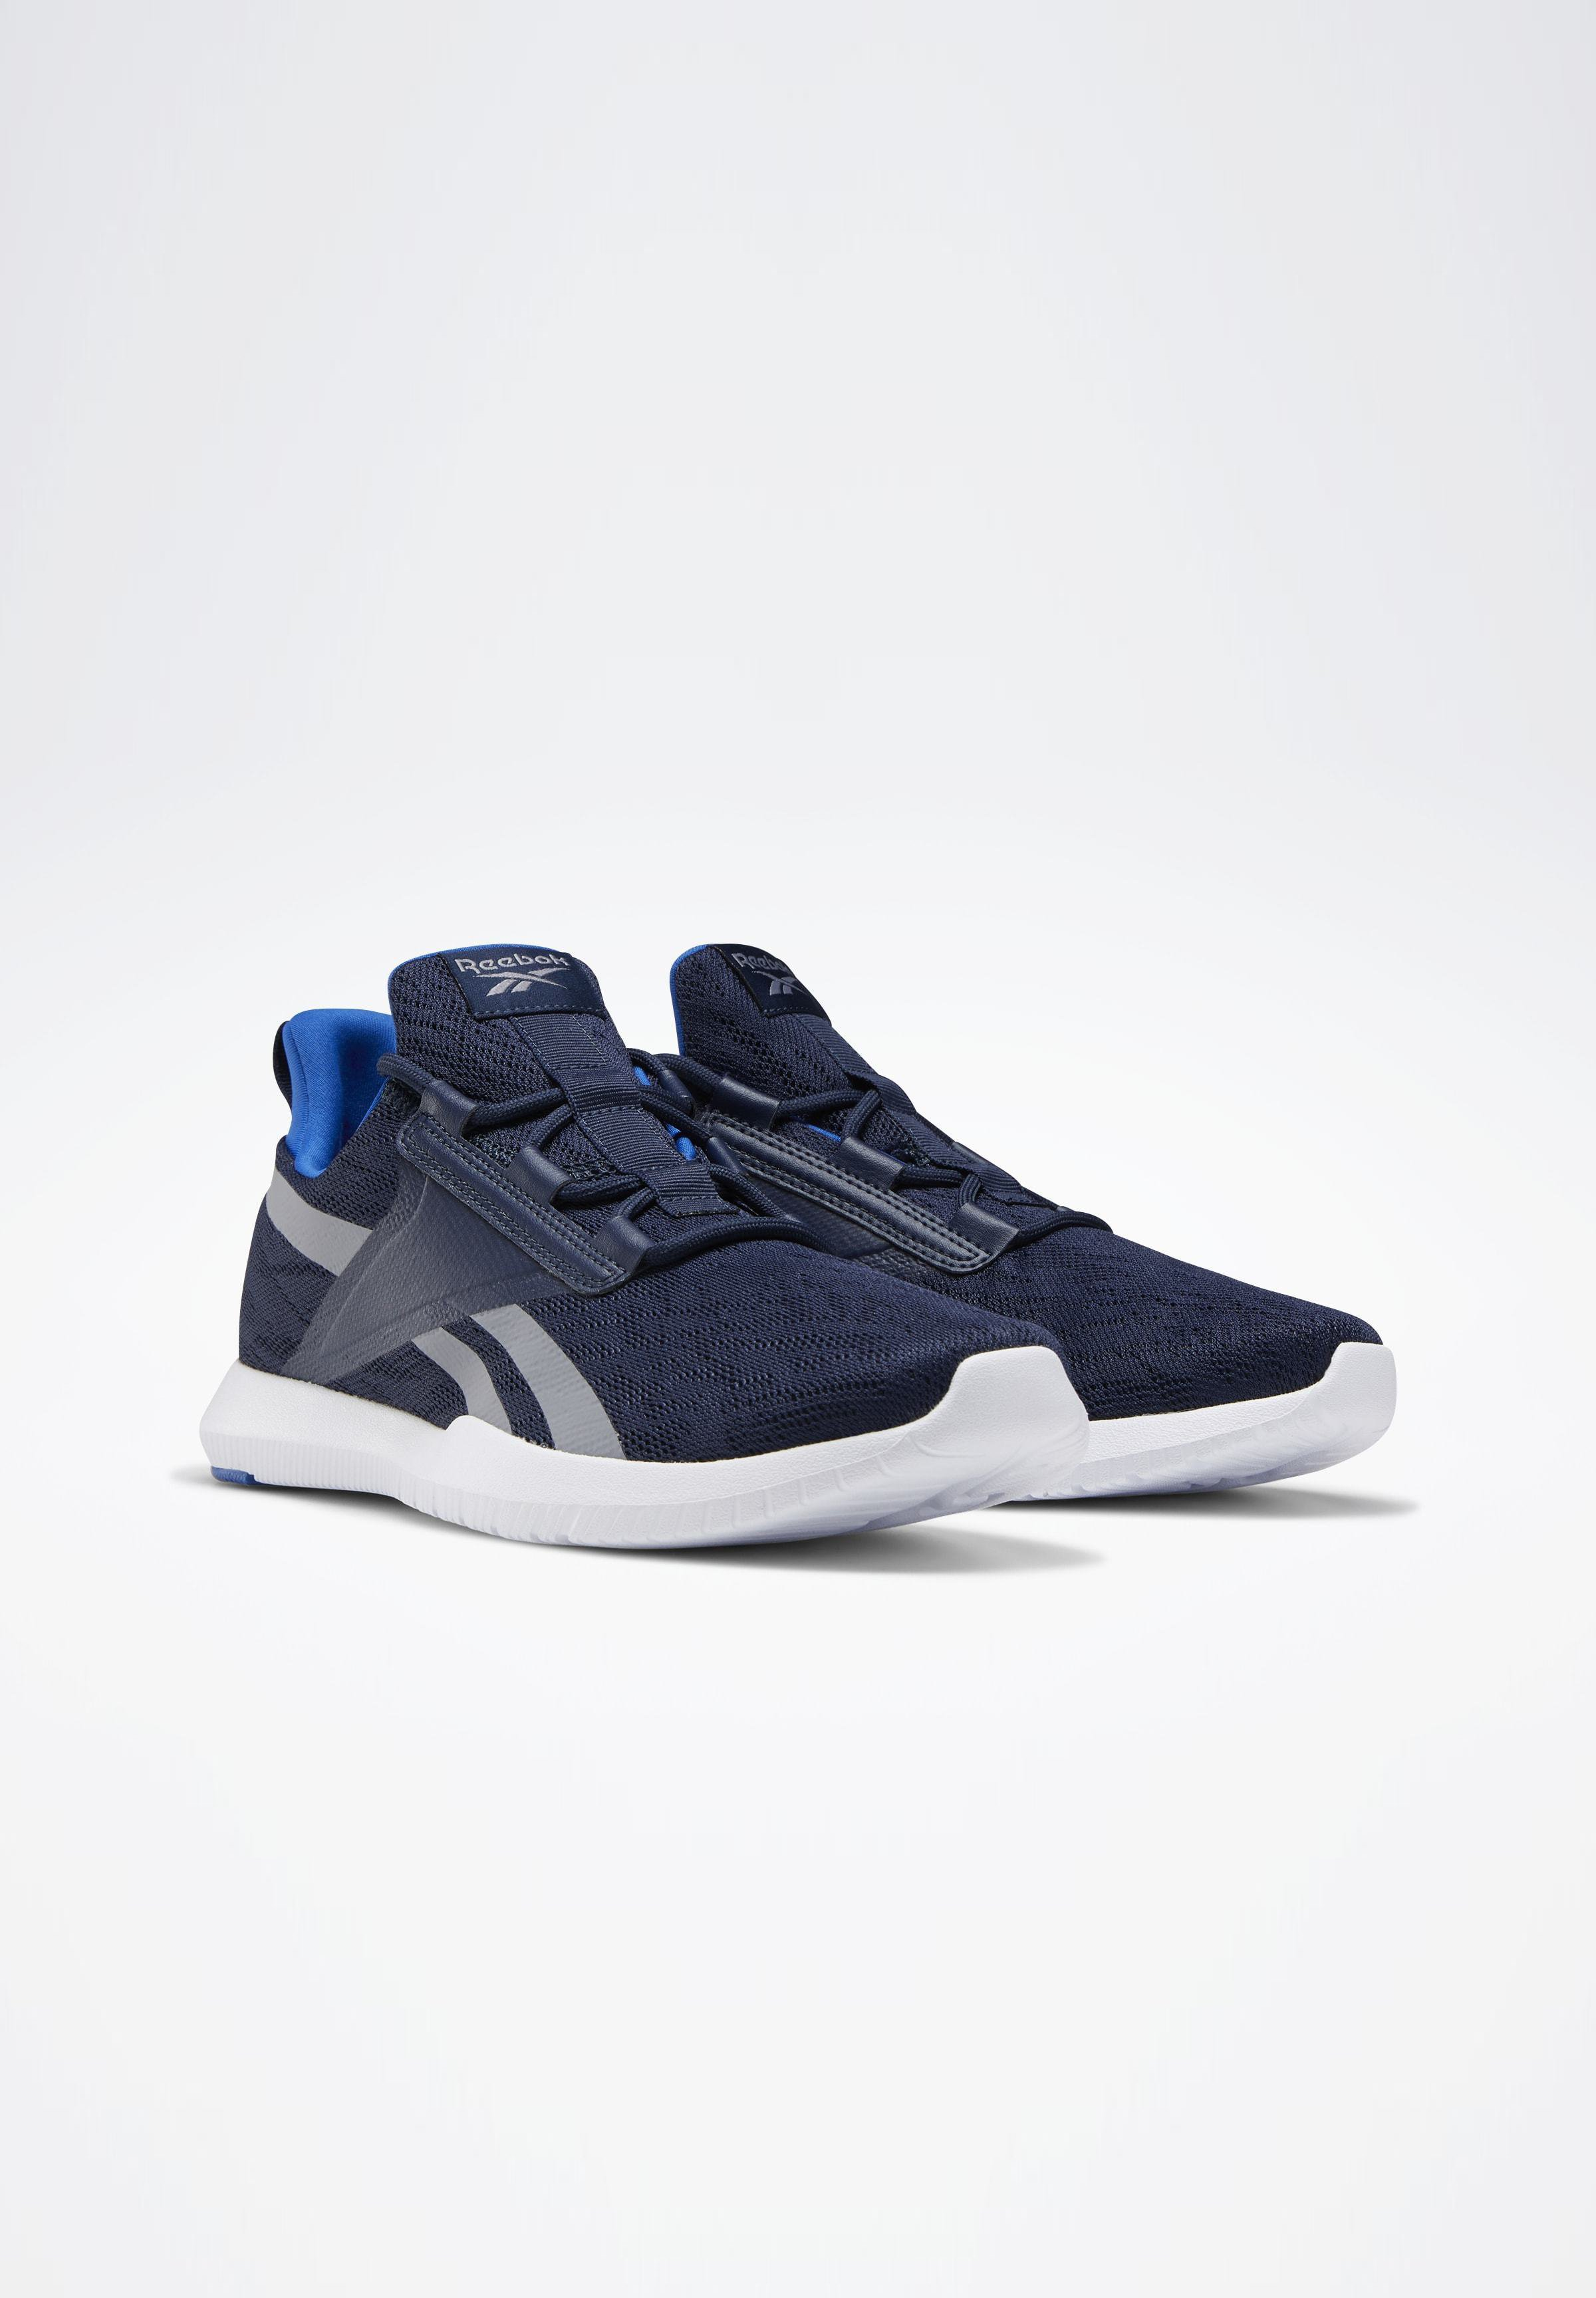 Reebok REEBOK REAGO PULSE 2.0 SHOES - Trainings-/Fitnessschuh - blue/blau - Herrenschuhe qEQ0r